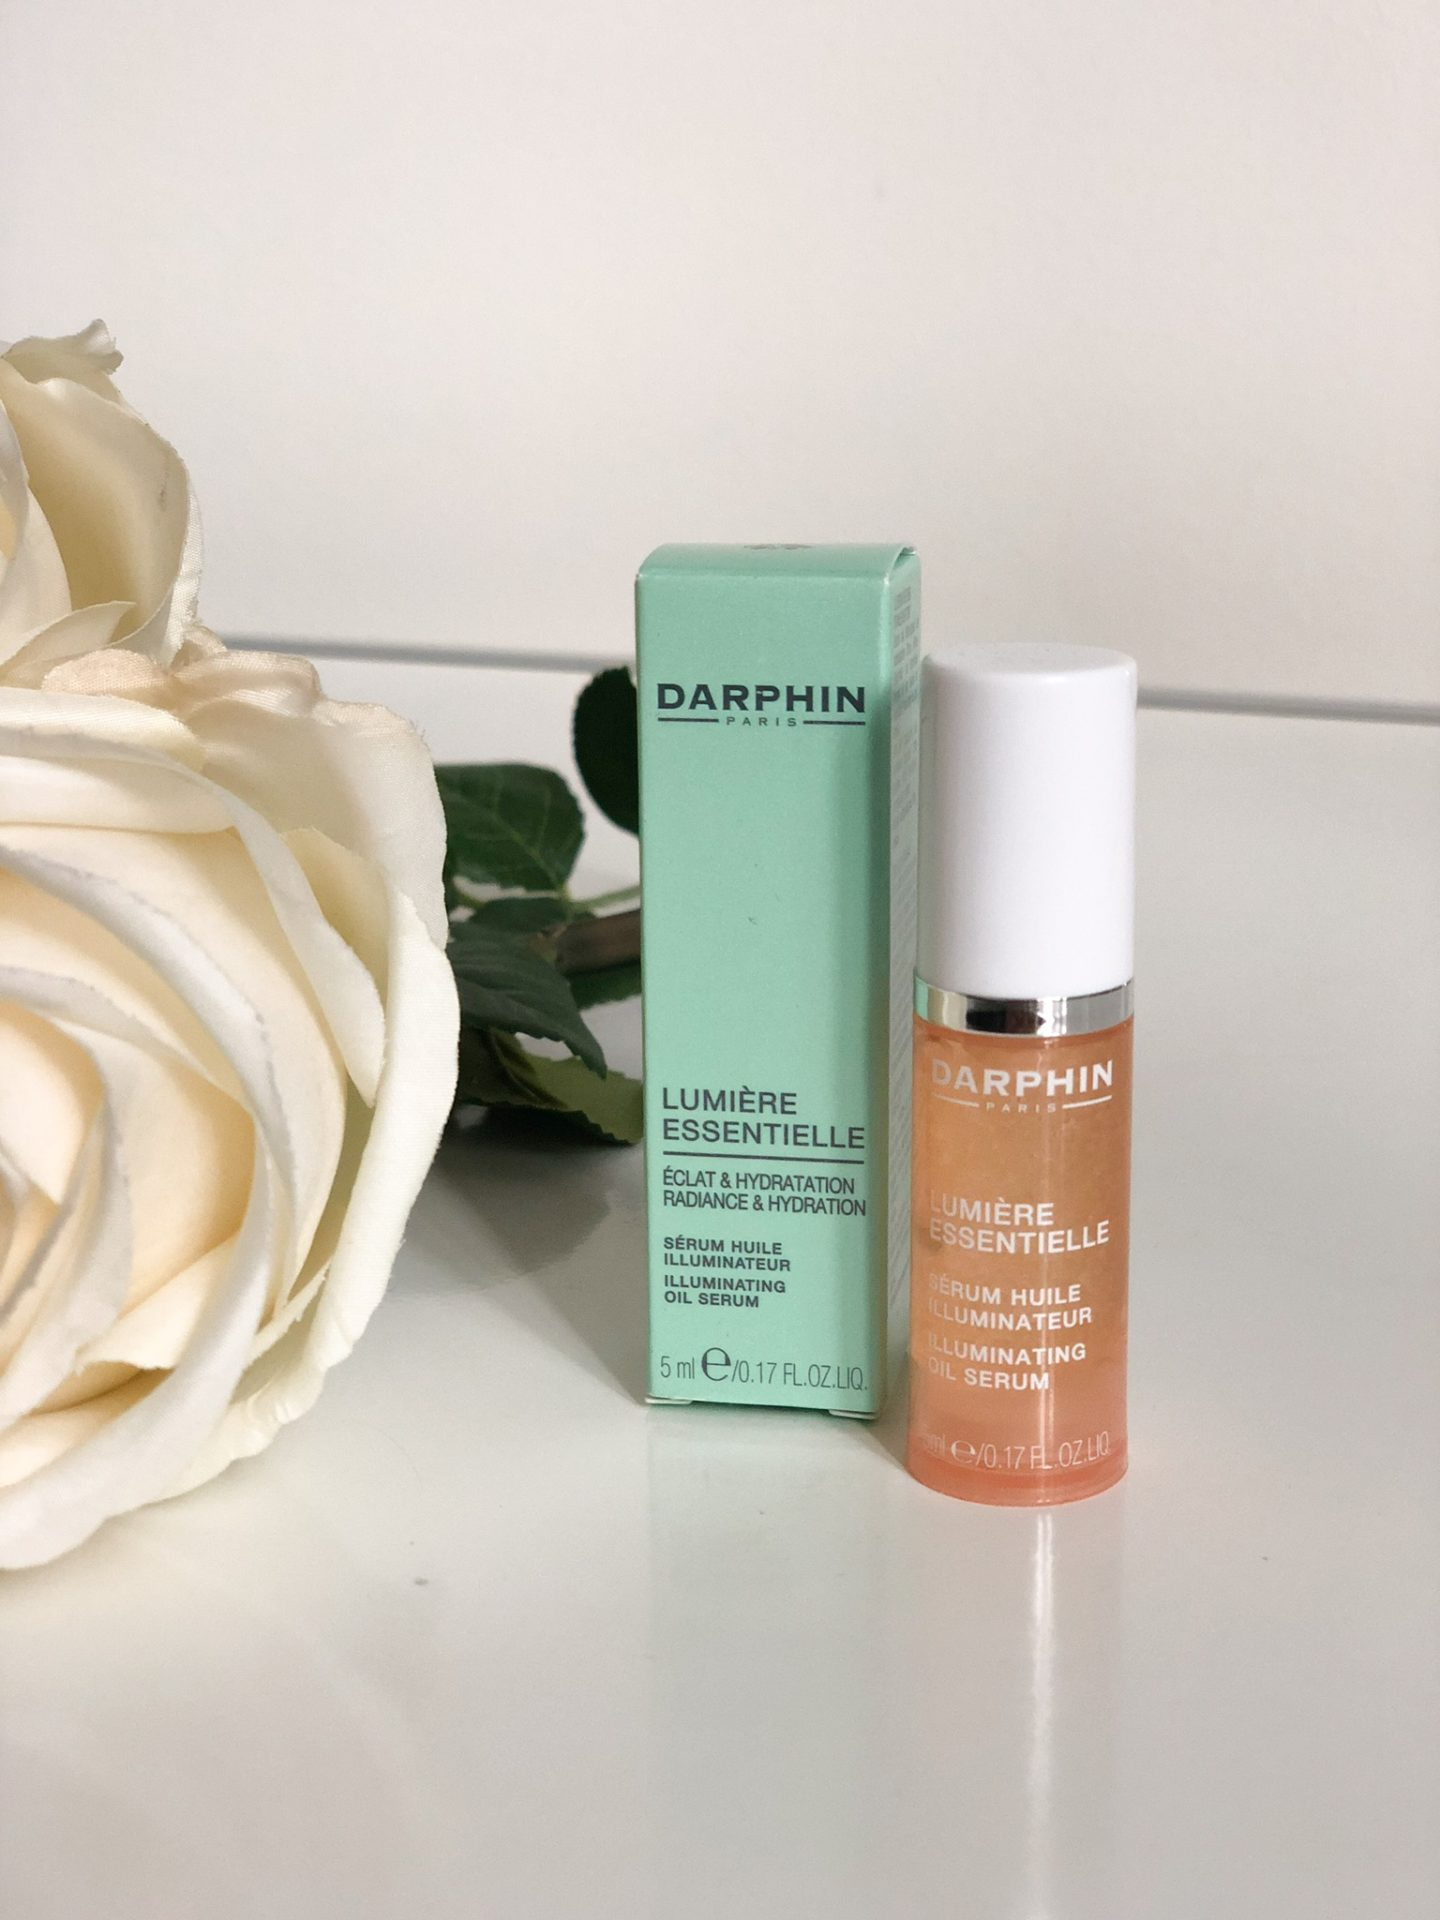 Beauty treats for summer